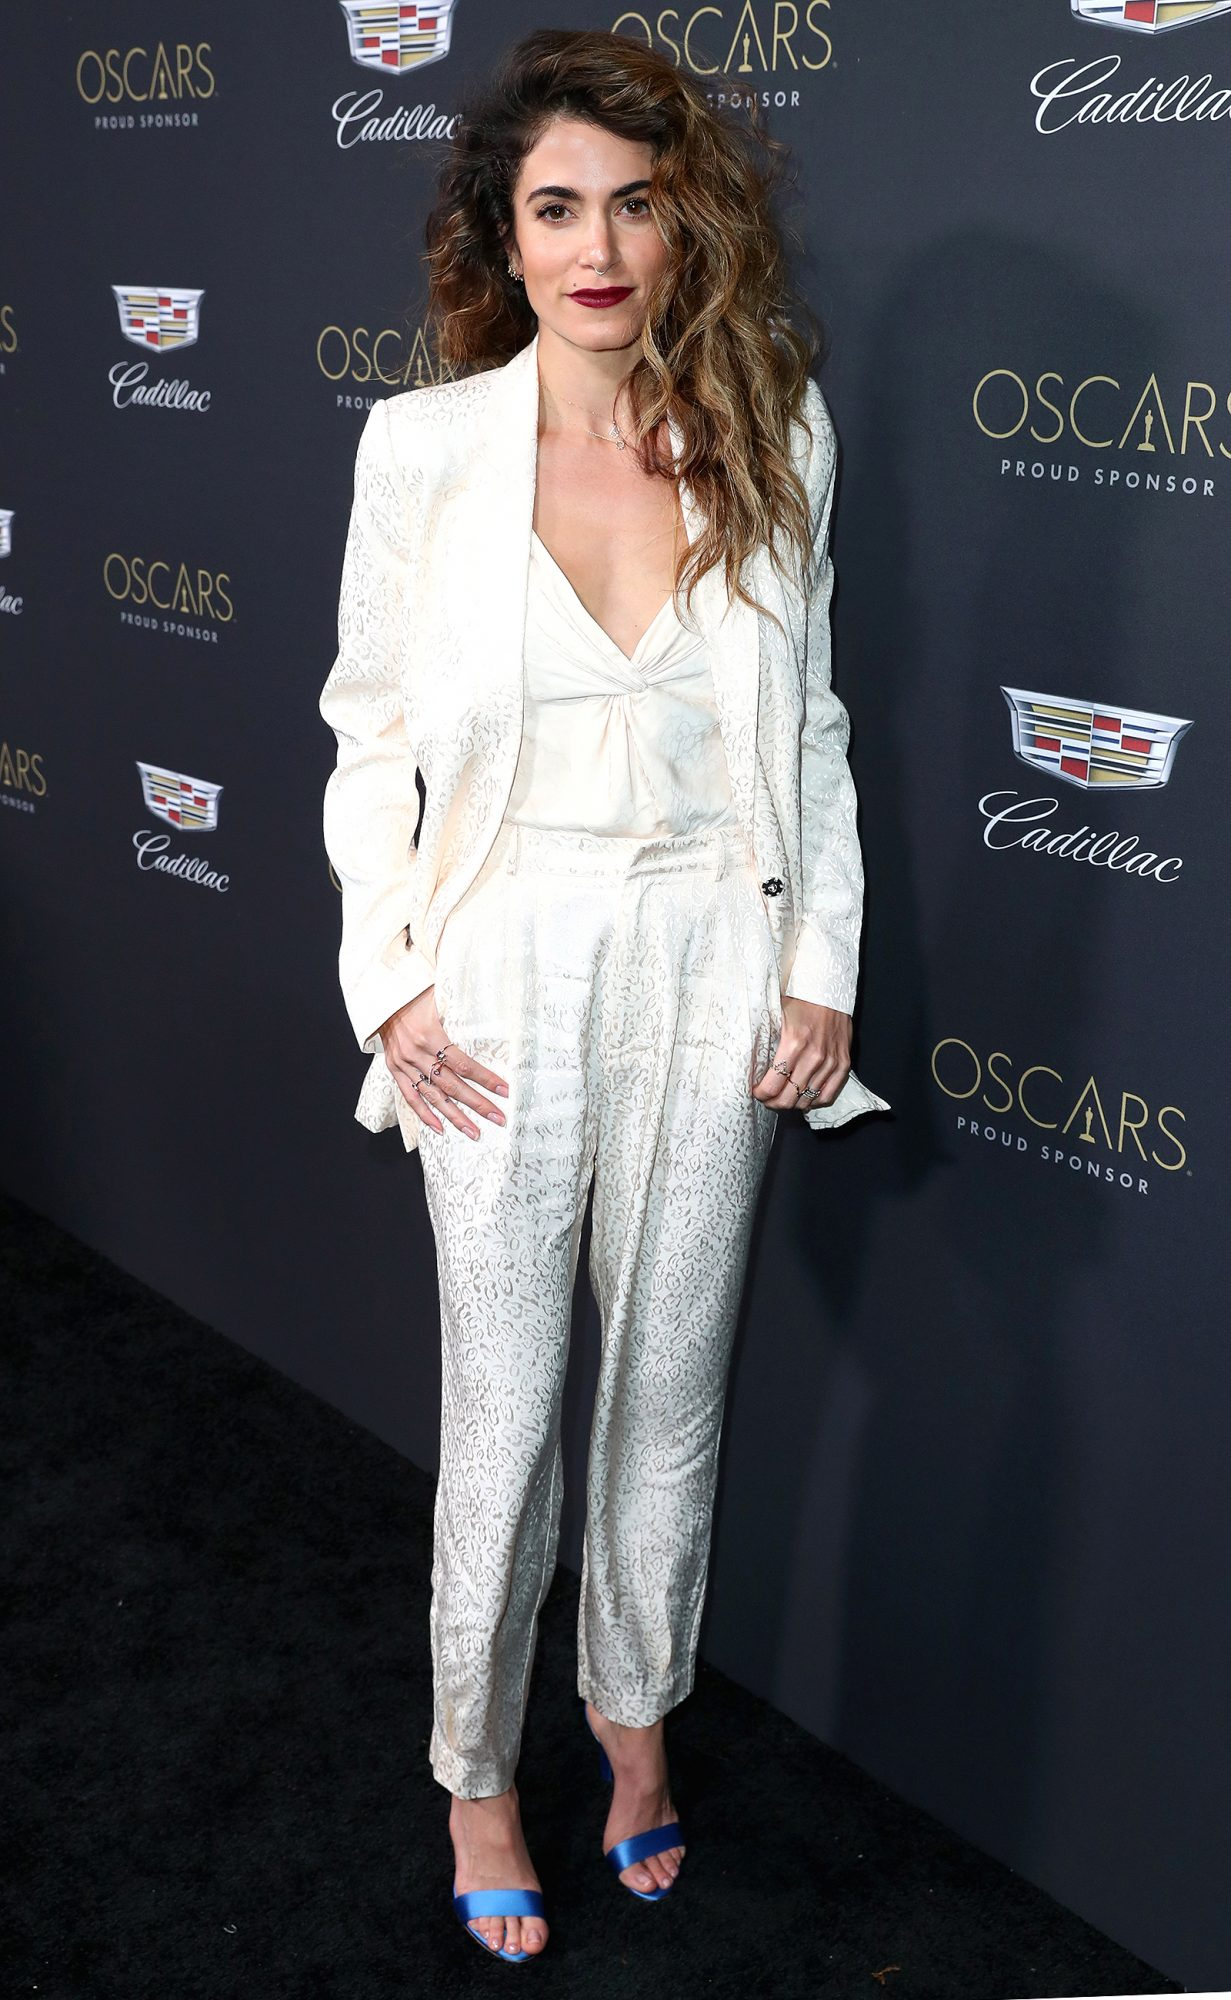 Cadillac Celebrates Oscar Week 2019